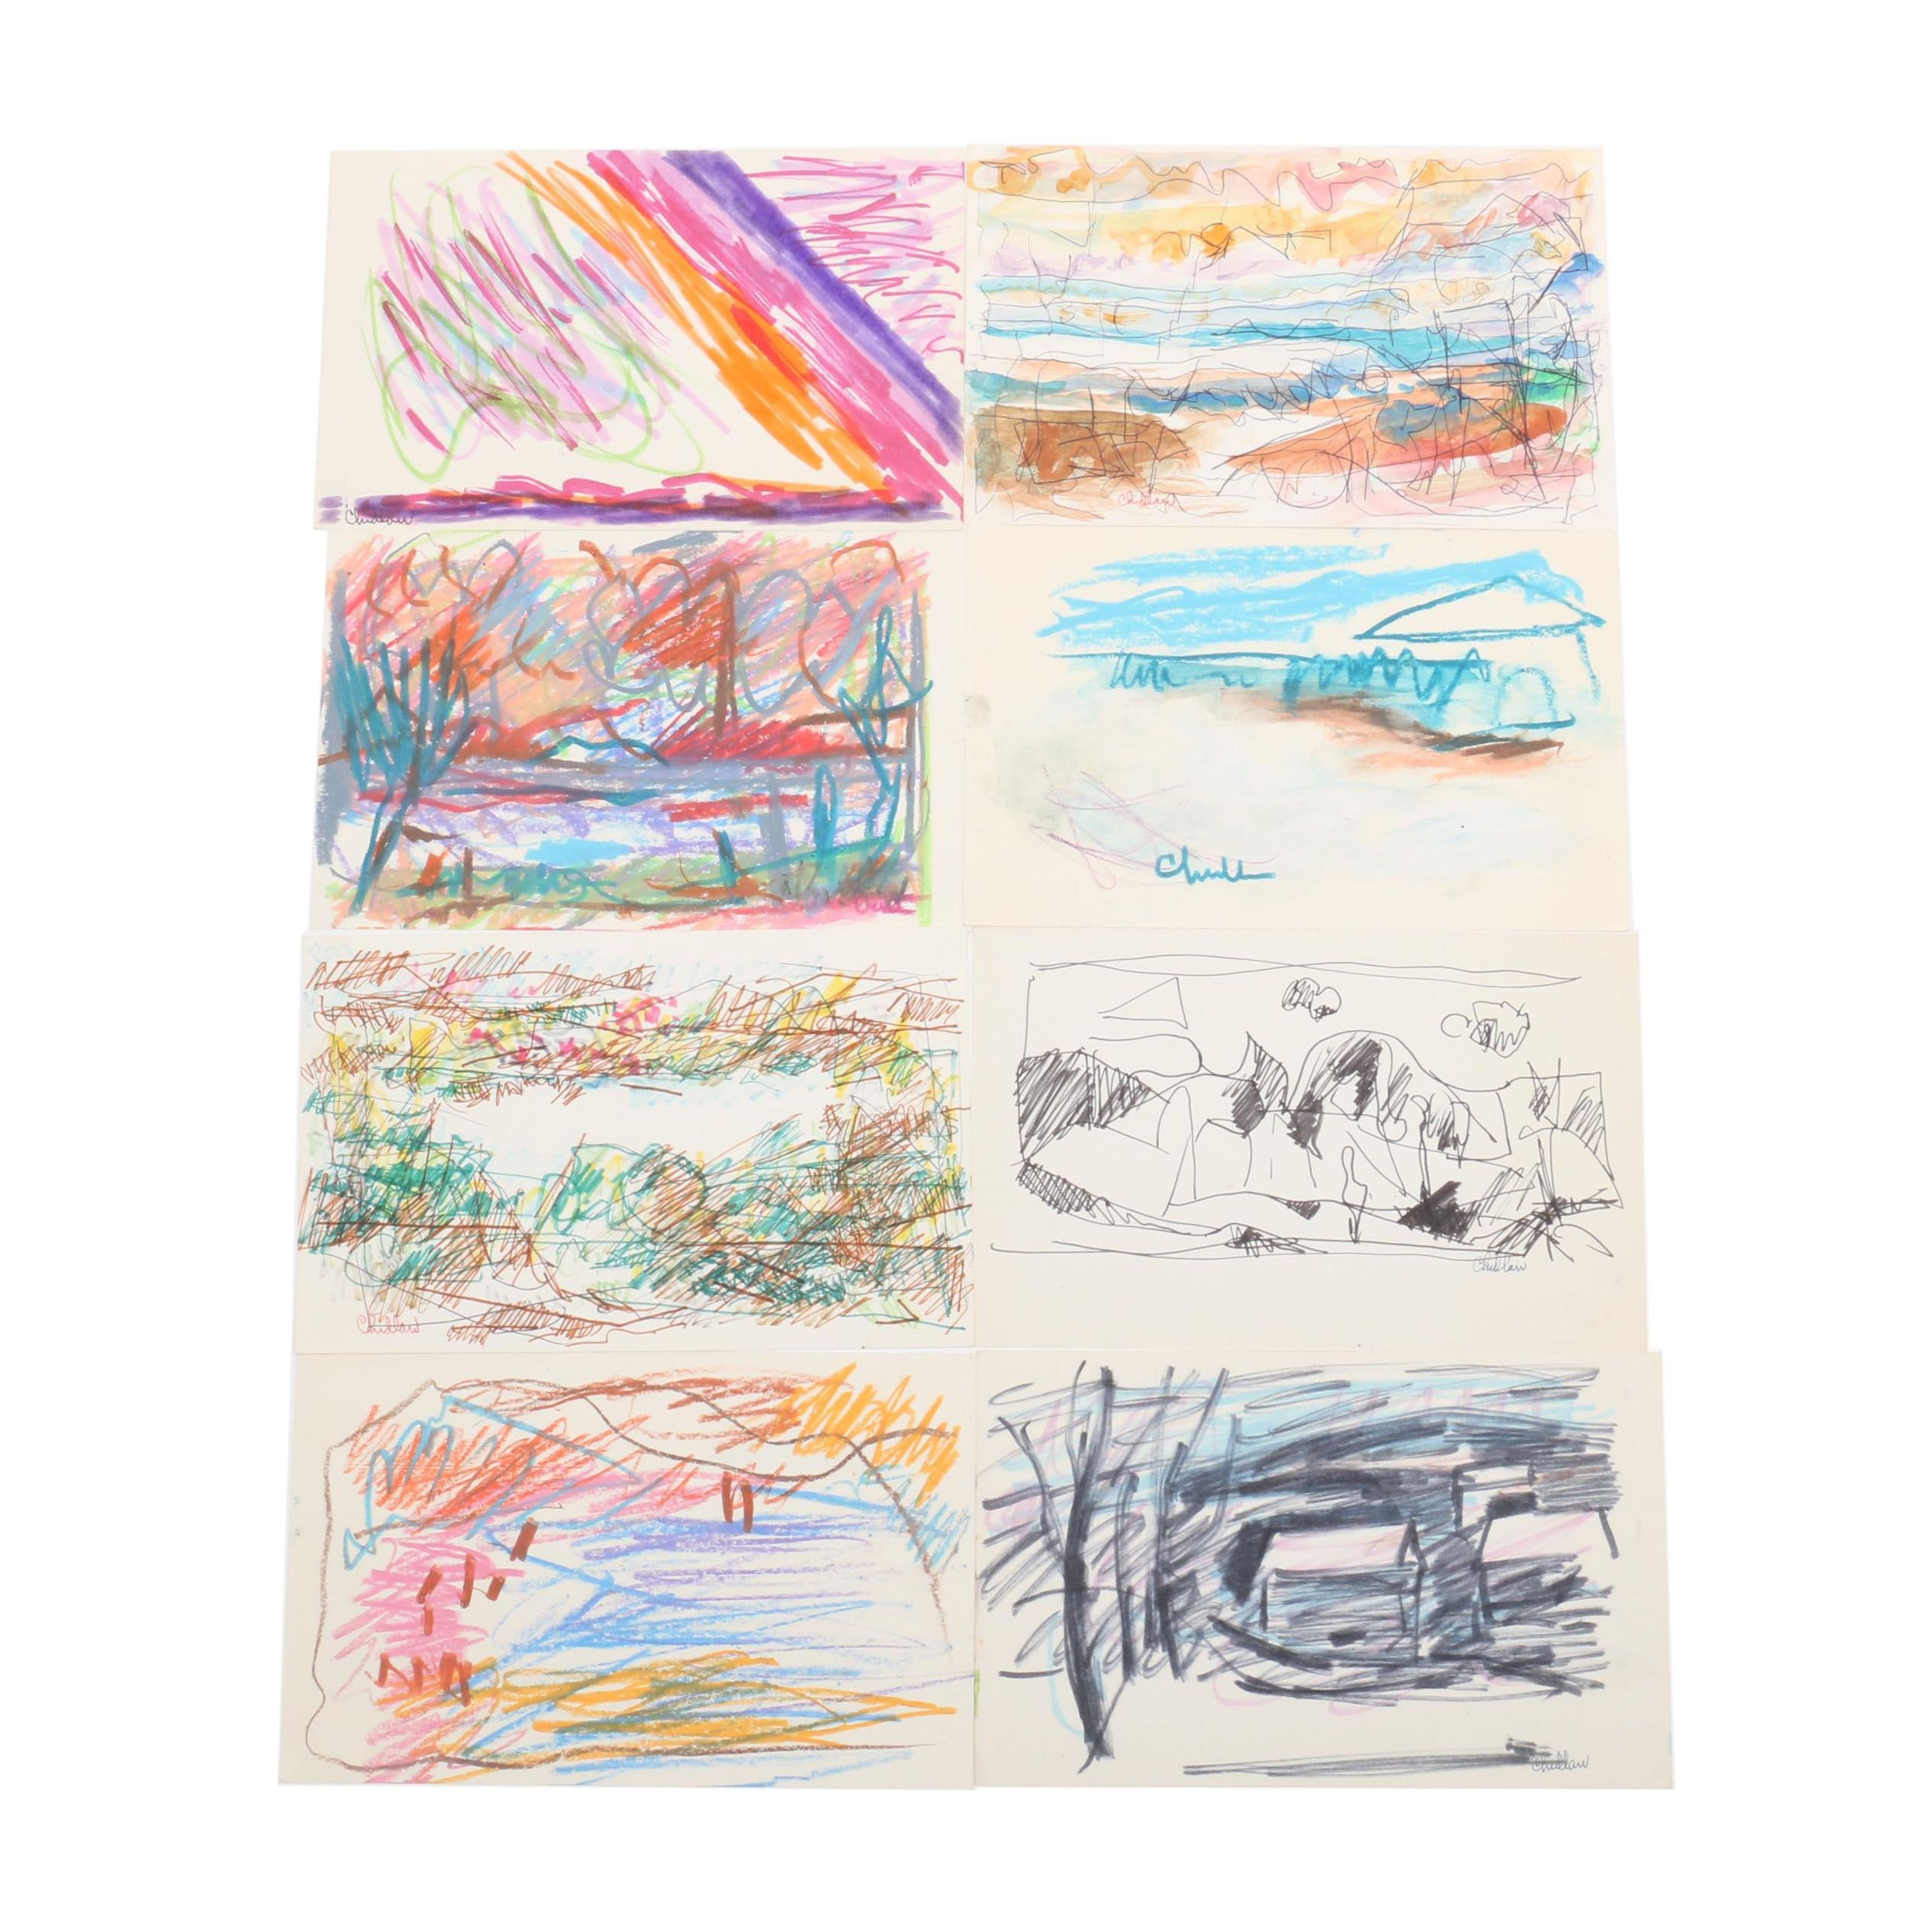 Paul Chidlaw Mixed Media Abstract Expressionist Drawings